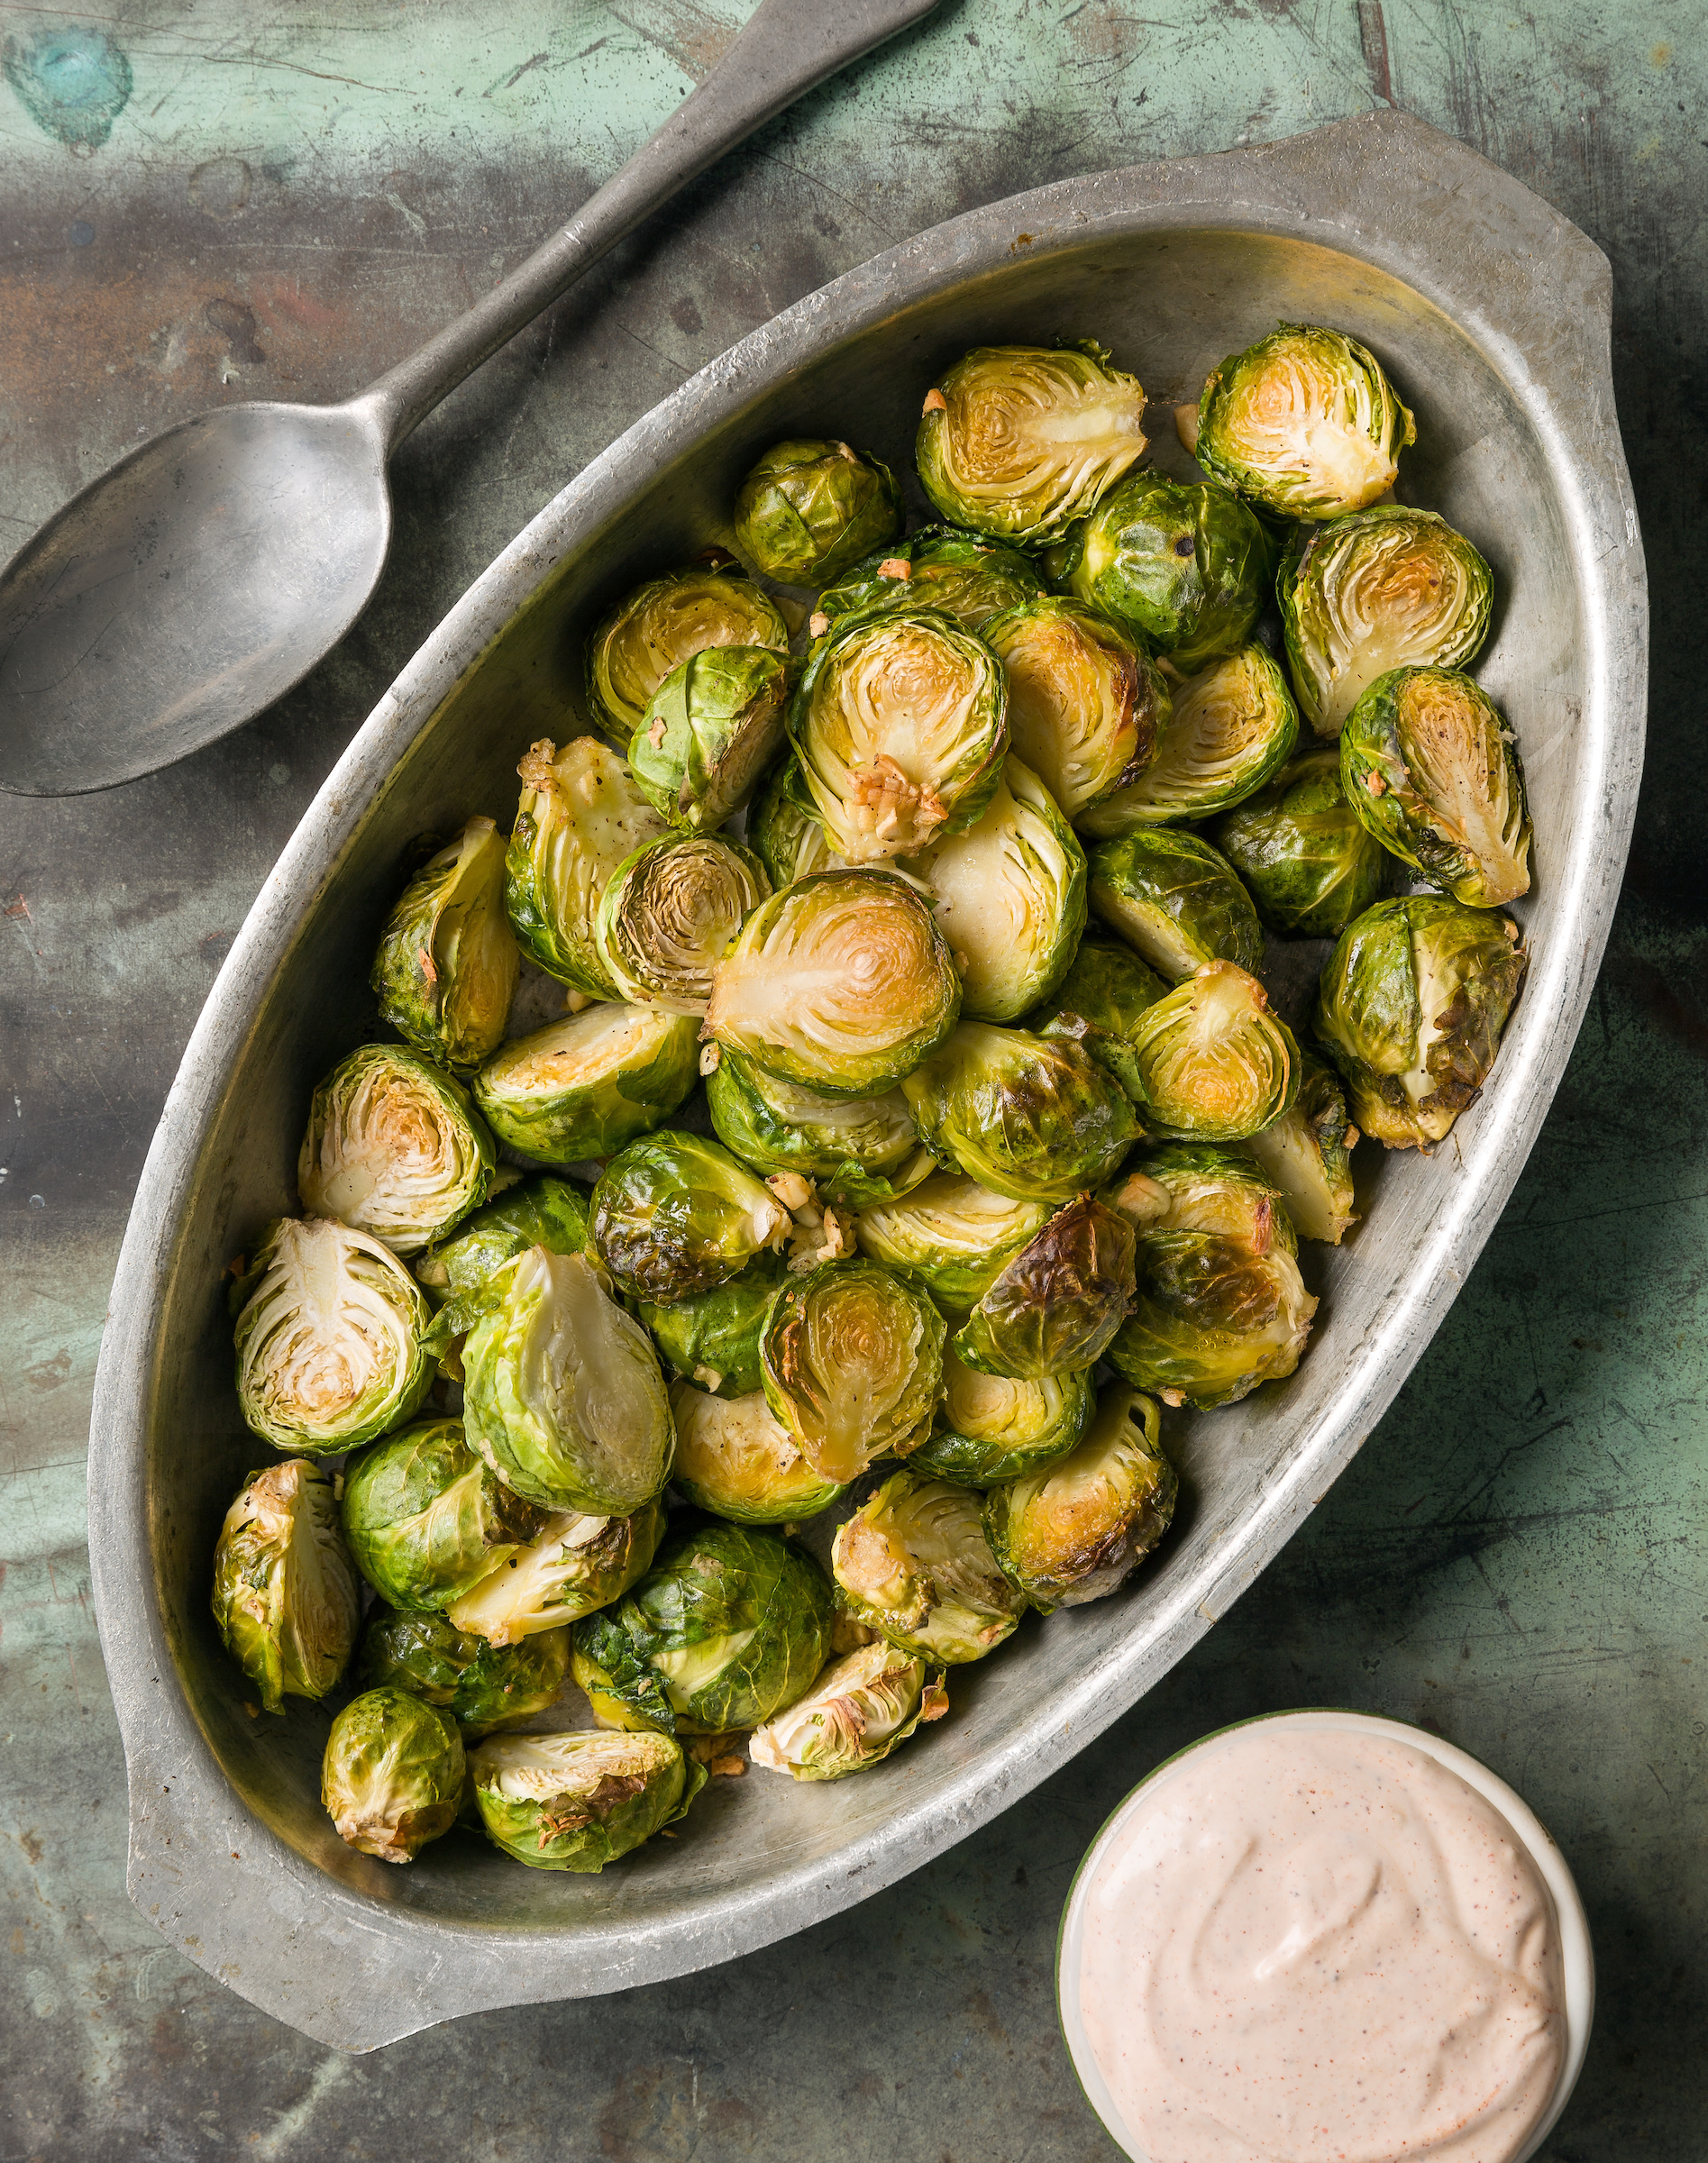 Non-GMO-Brussels-Sprouts.JPG